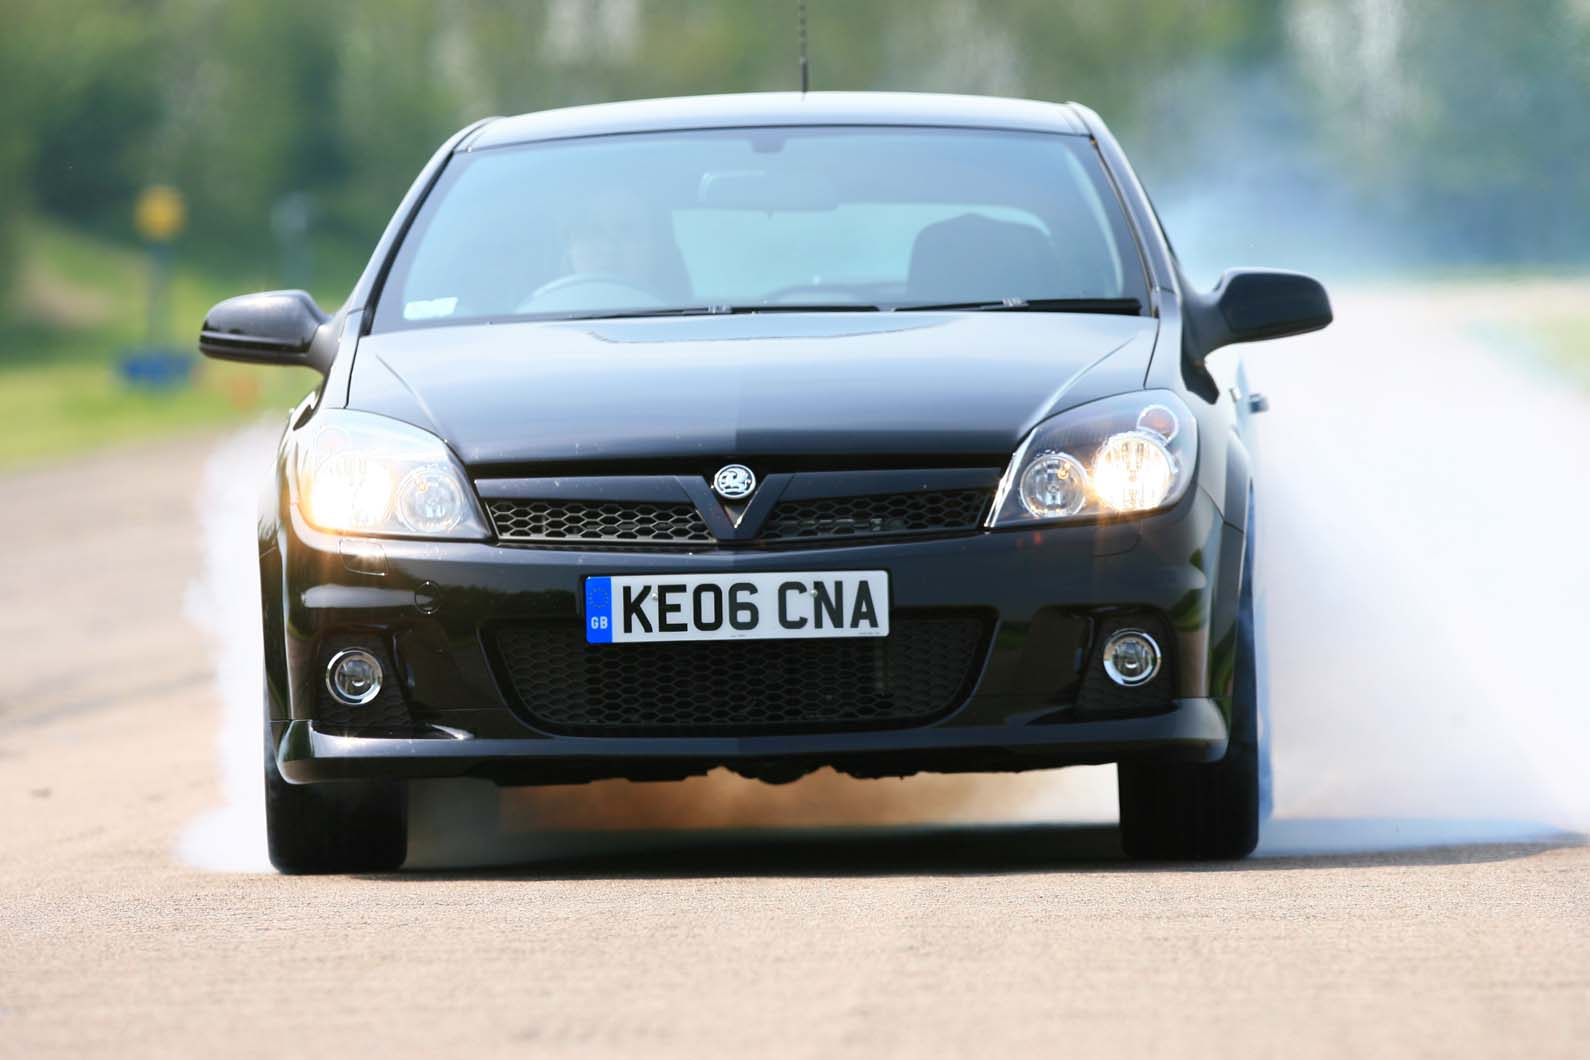 Used car buying guide: Vauxhall Astra VXR